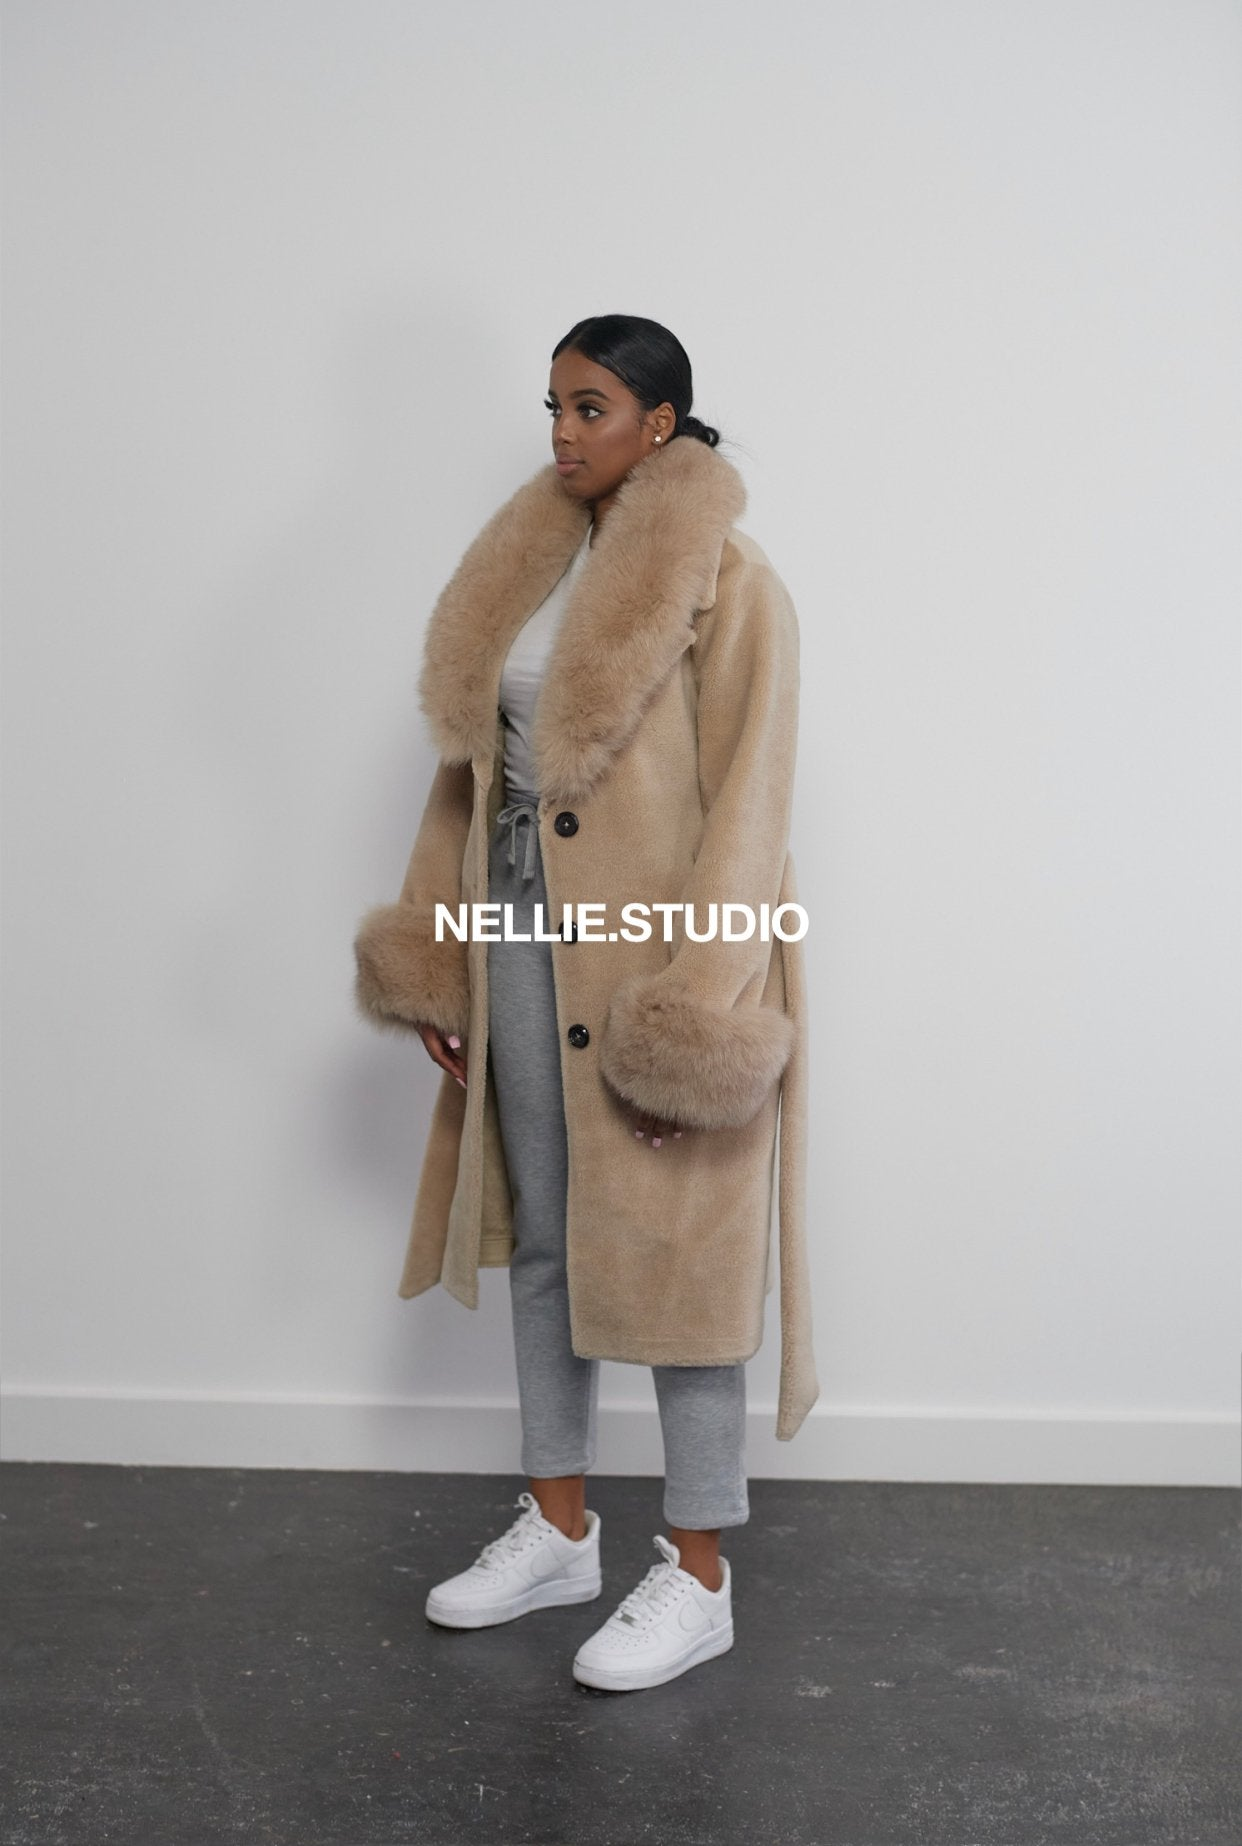 The Collared Teddy Coat in 'Nude'